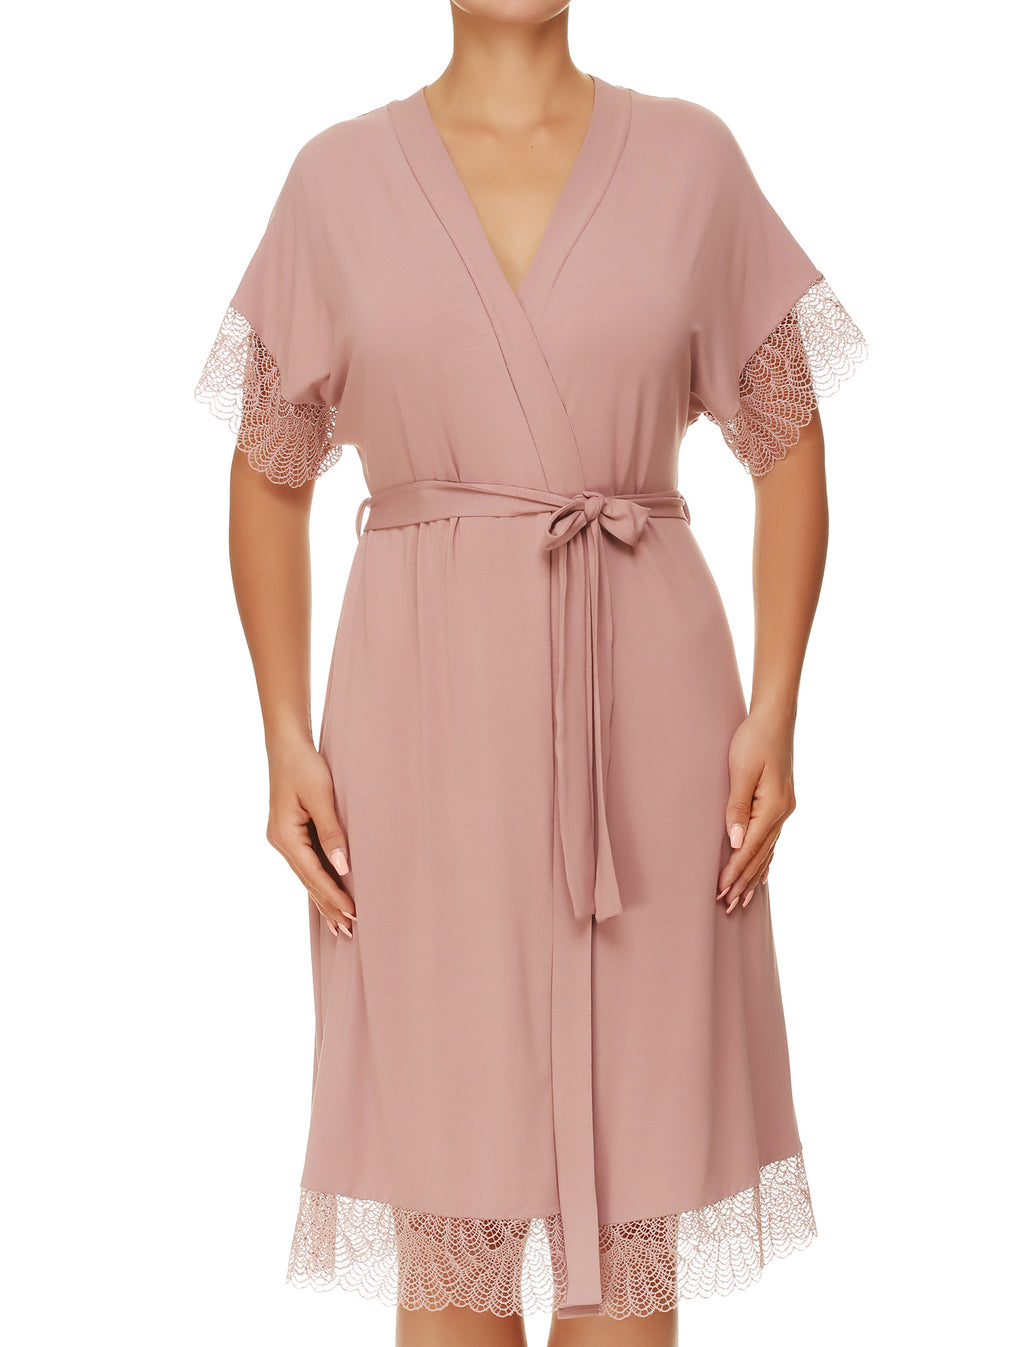 Lauma, Pink Viscose Dressing Gown Robe, On Model Front, 02H98